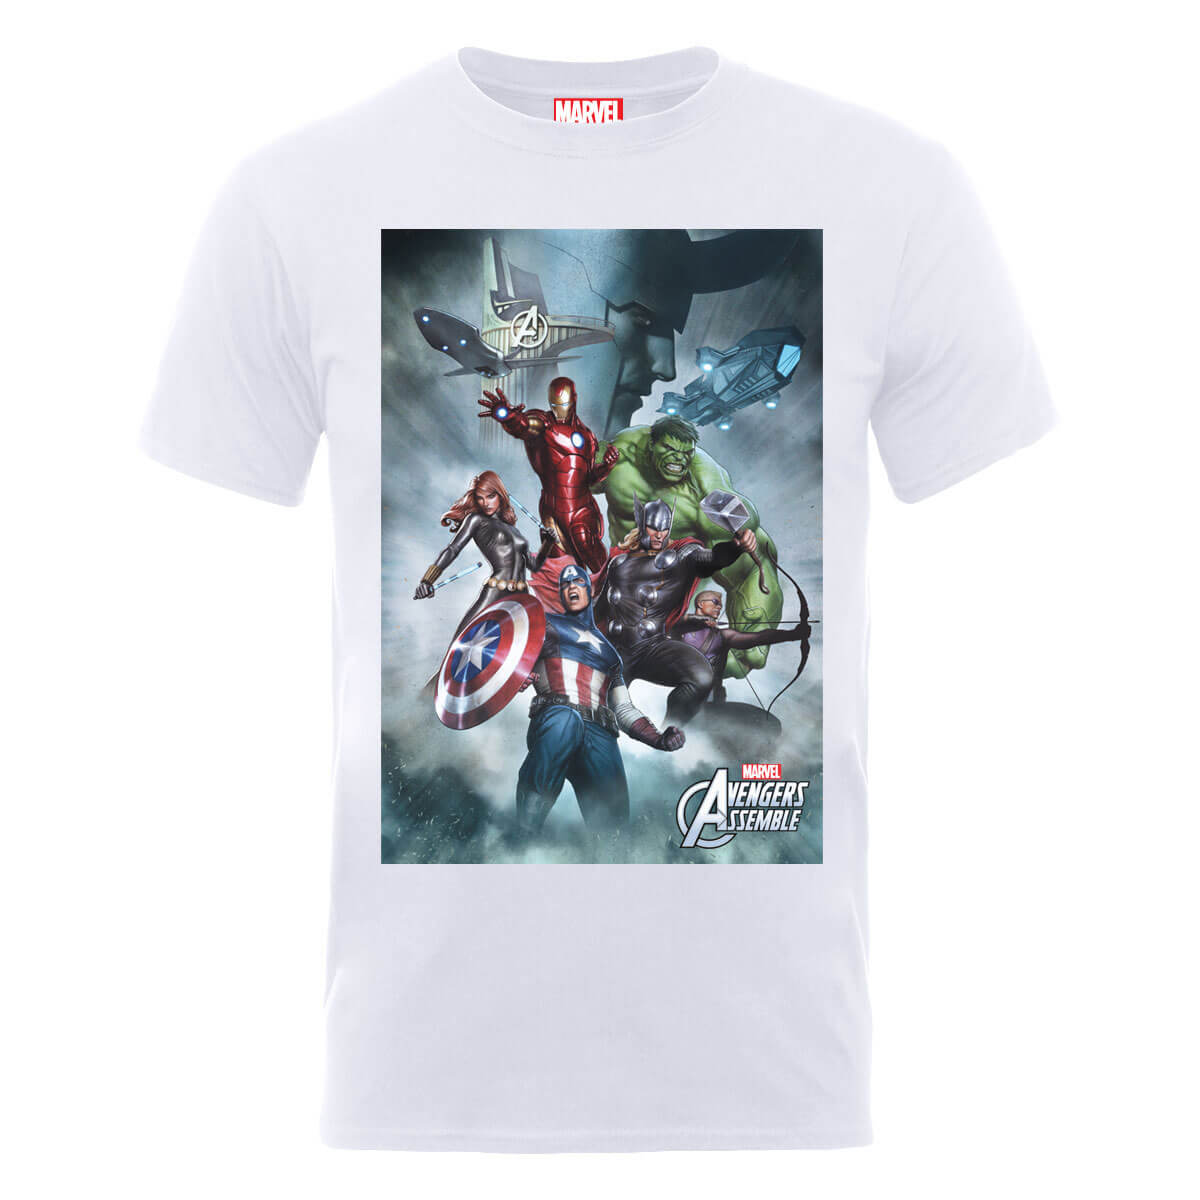 Marvel Avengers Team Montage T-Shirt - White